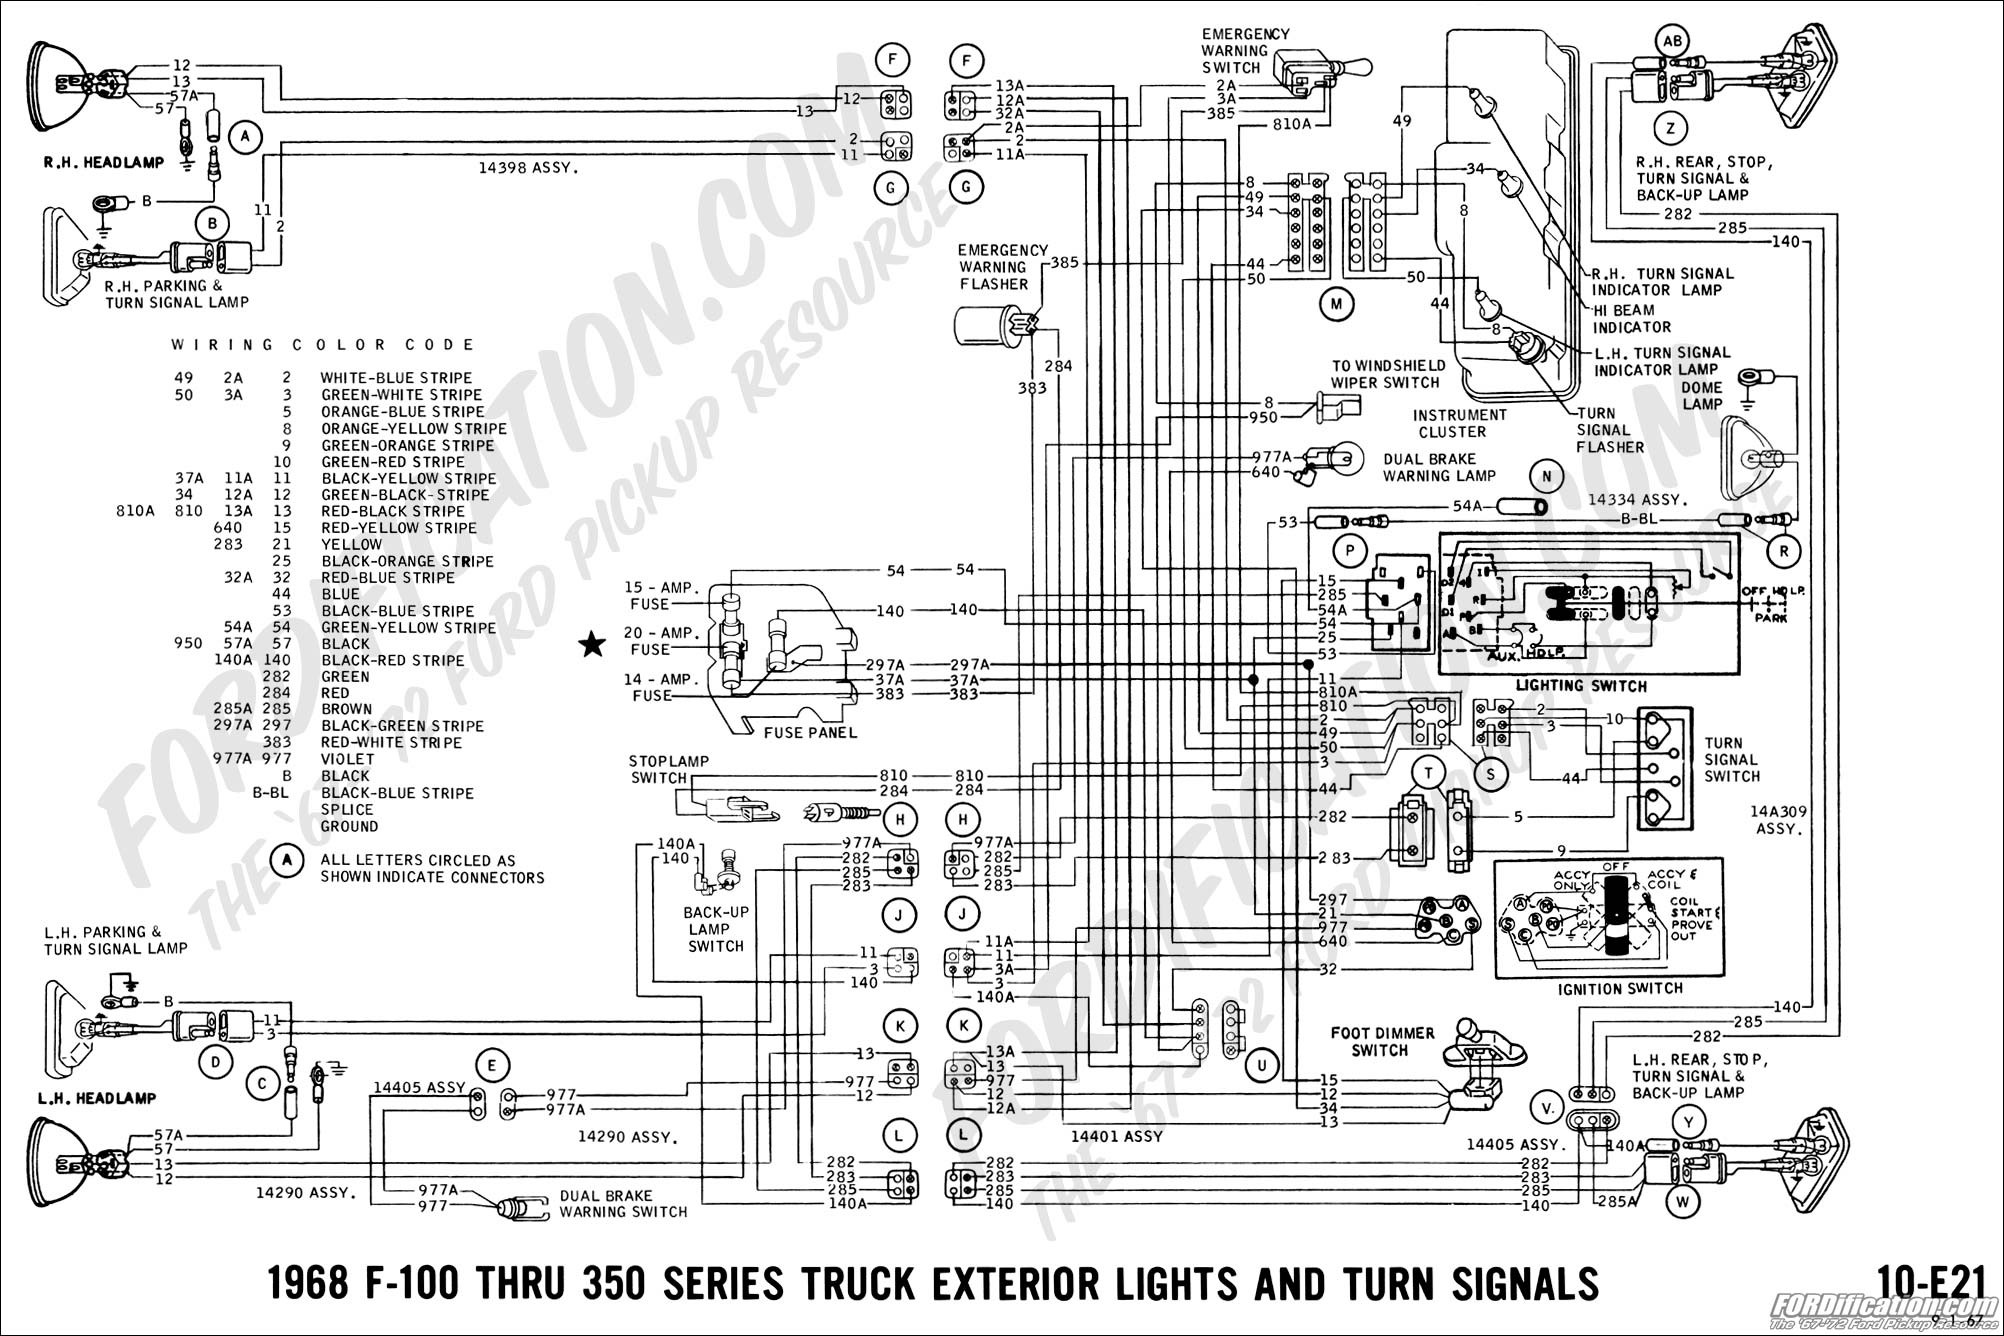 67 72 Chevy Truck Wiring Diagram 1968 ford Ranger solenoid Wiring Wiring Data Of 67 72 Chevy Truck Wiring Diagram